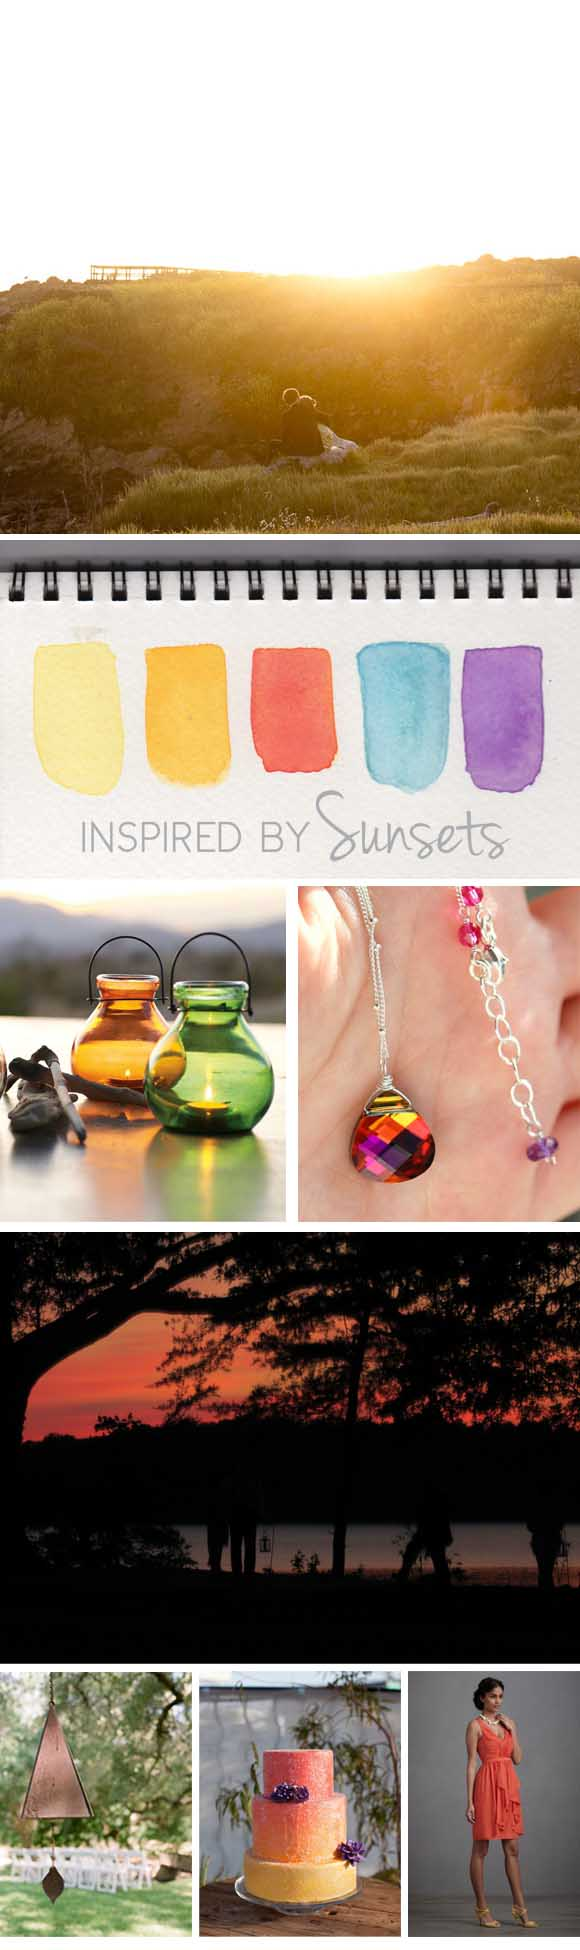 Inspired by Sunsets: Reception ideas